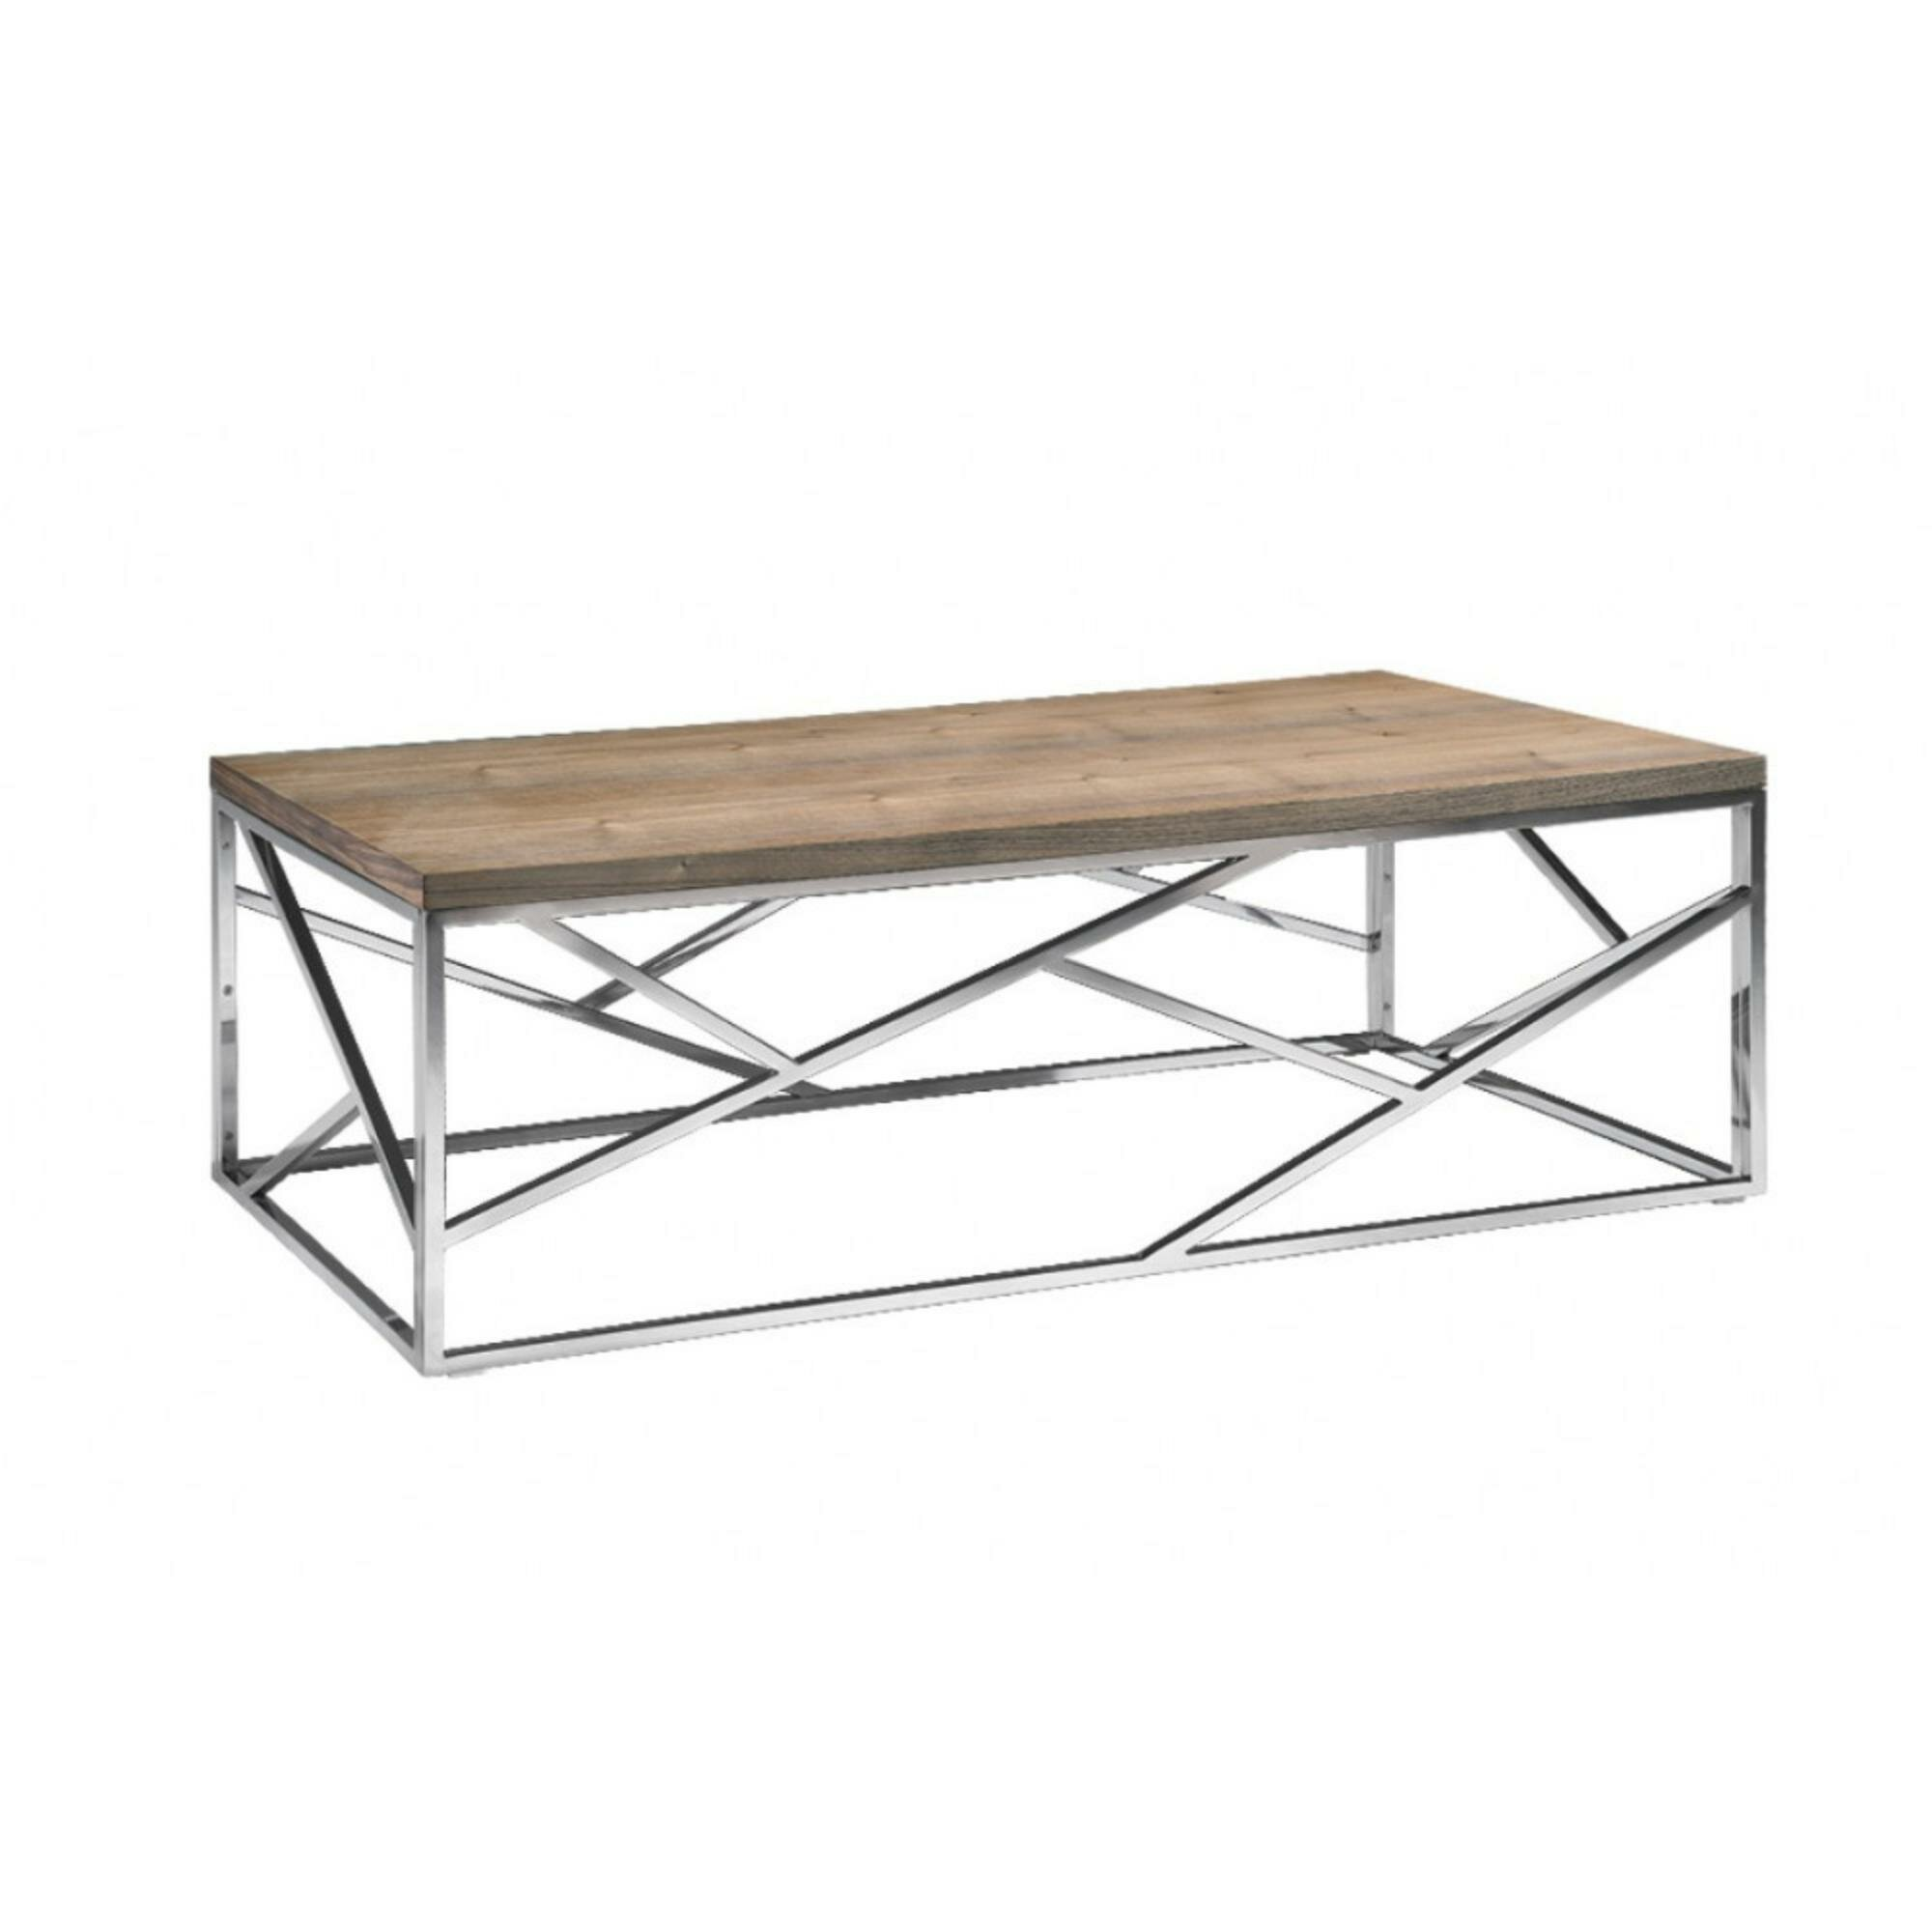 Wondrous Frisbee Wood And Metal Coffee Table Machost Co Dining Chair Design Ideas Machostcouk